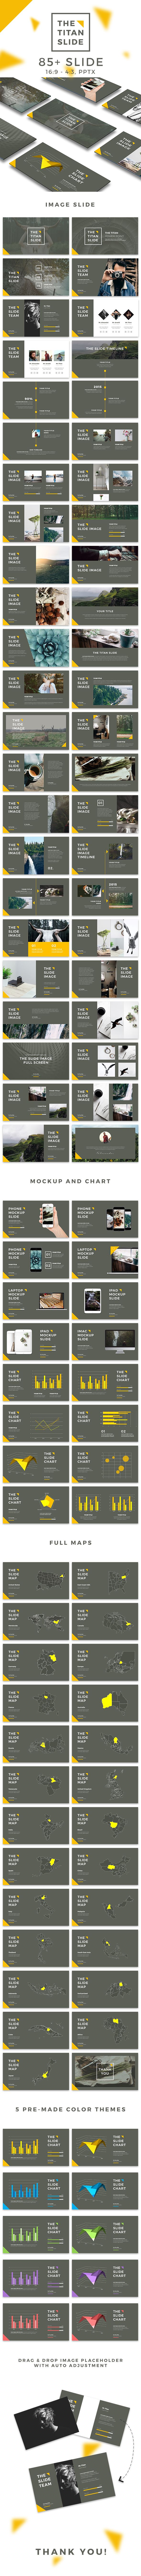 The Titan Slide - Powerpoint Template. Download here…